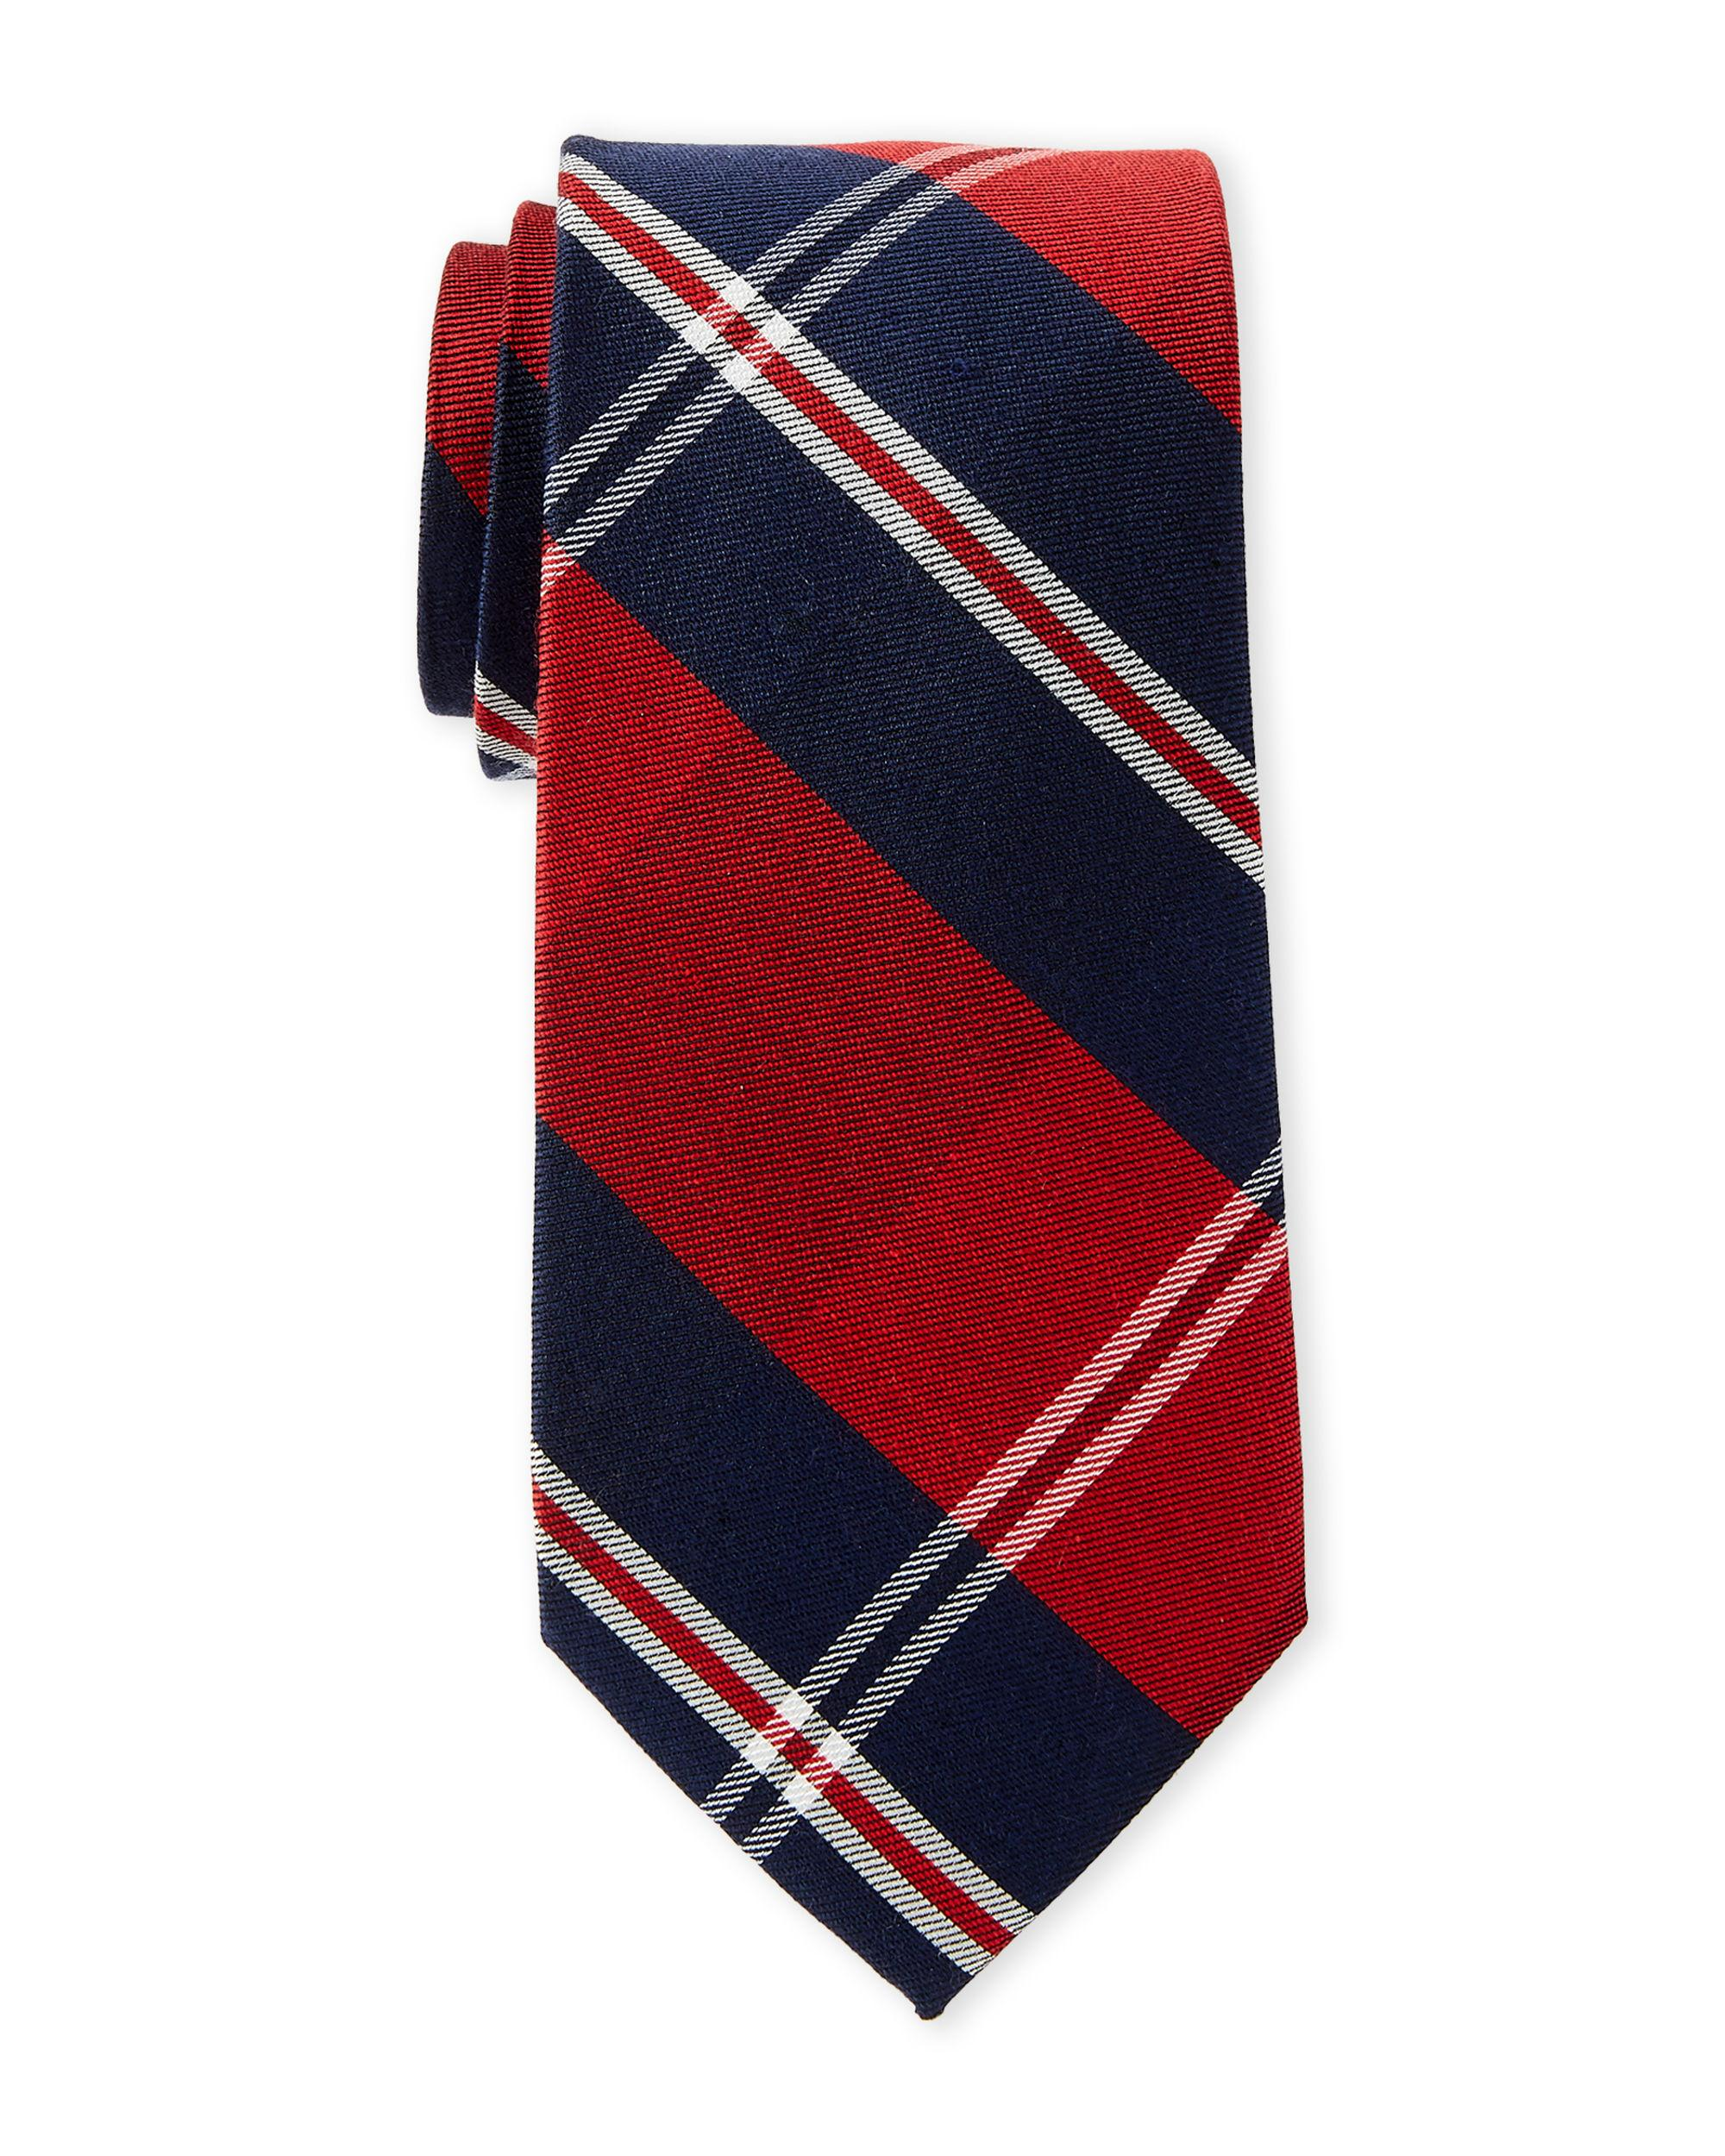 92ddd1e41d5f Lyst - Tommy Hilfiger Red Seaside Plaid Tie in Red for Men